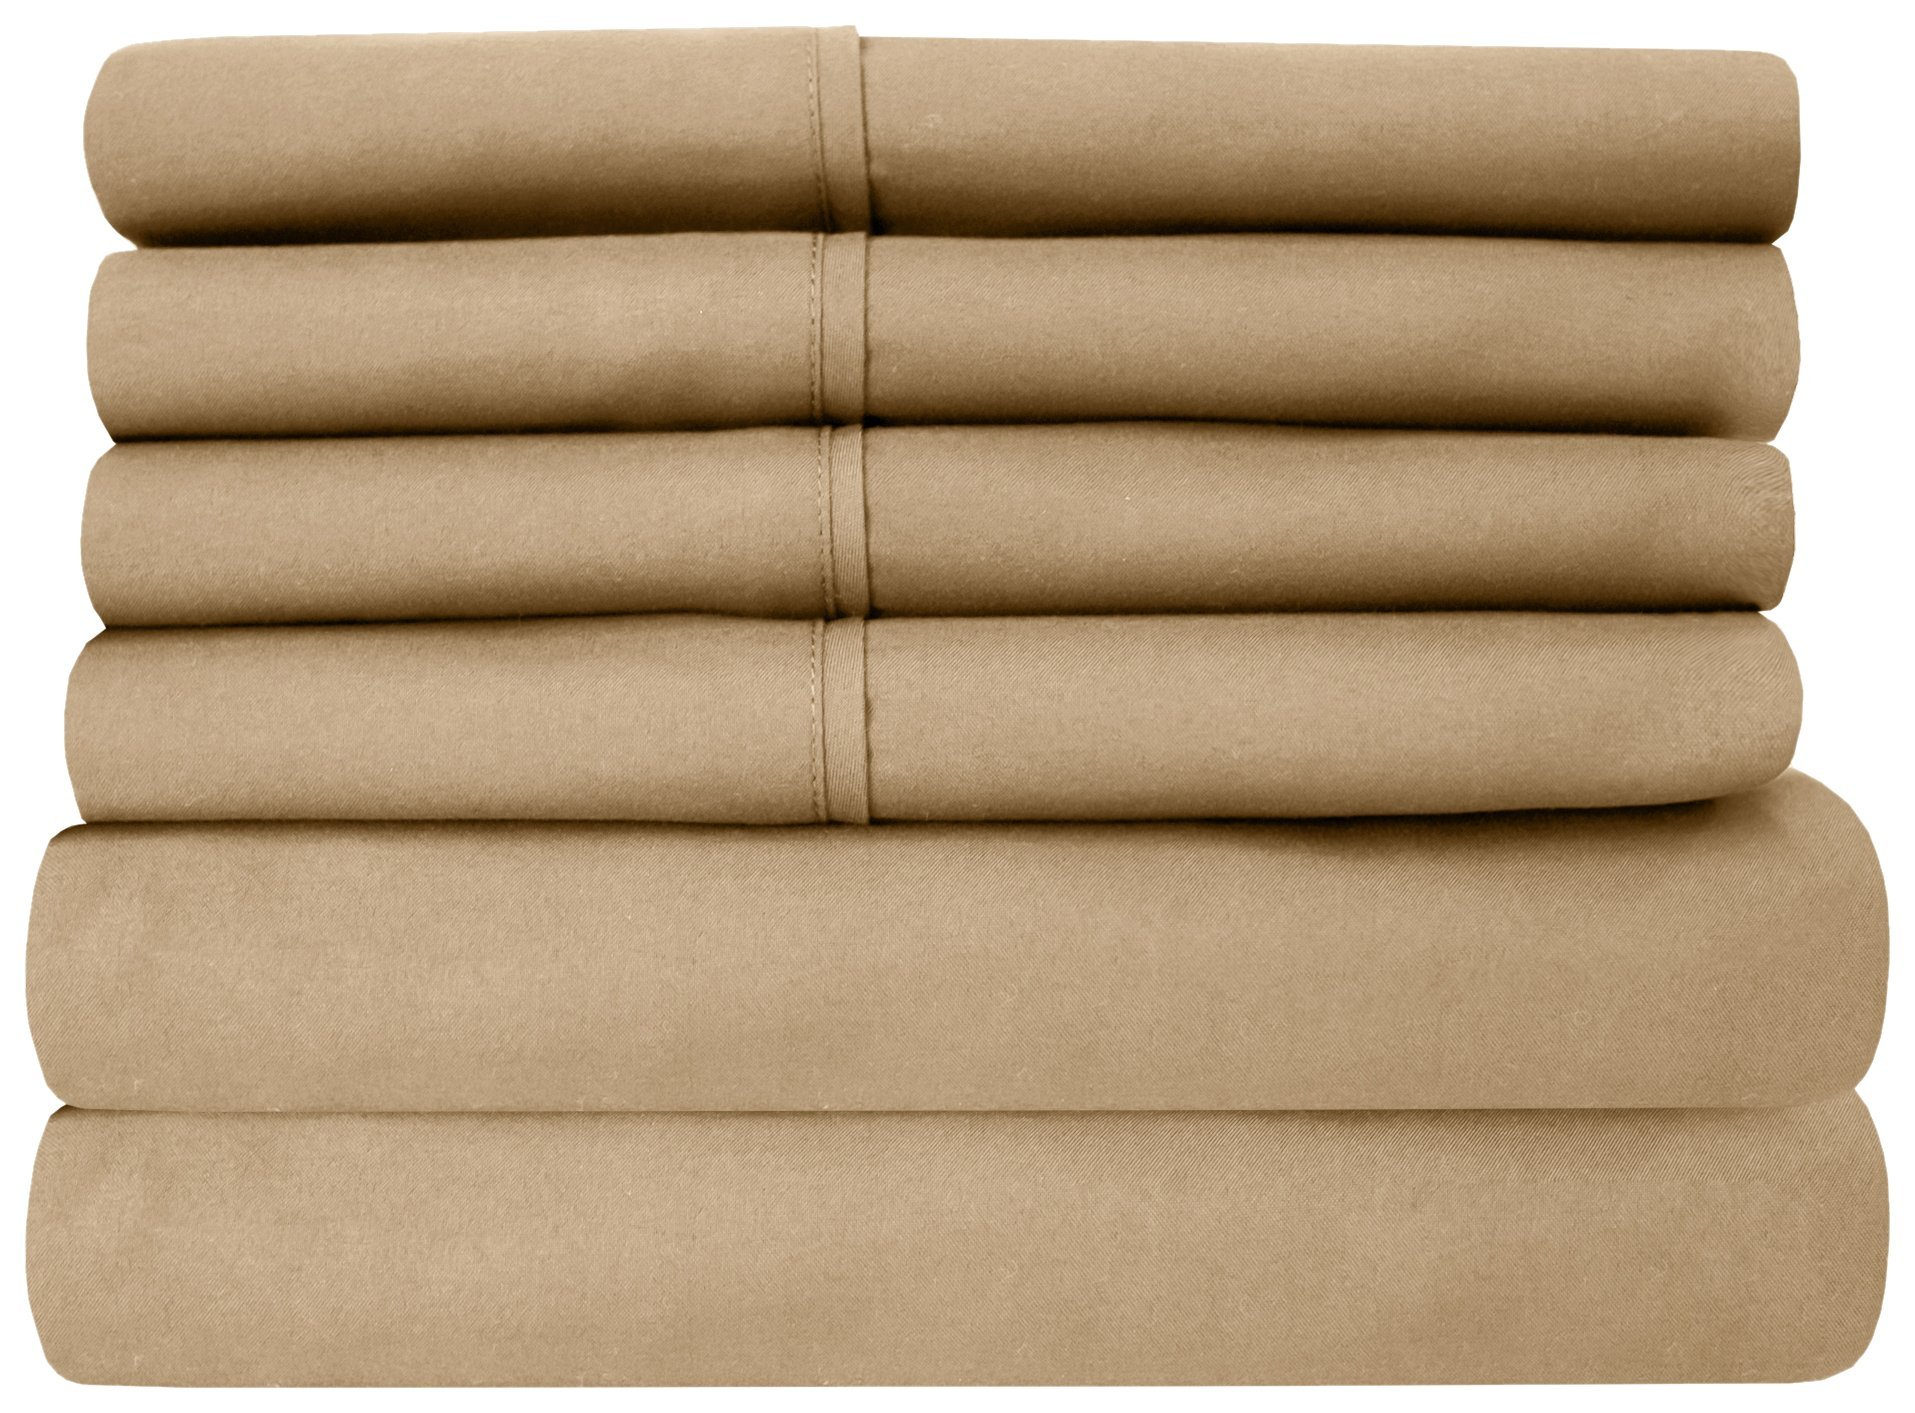 Sweet Home Collection 6 Piece 1500 Thread Count  Deep Pocket Bed Sheet Set, King, Taupe